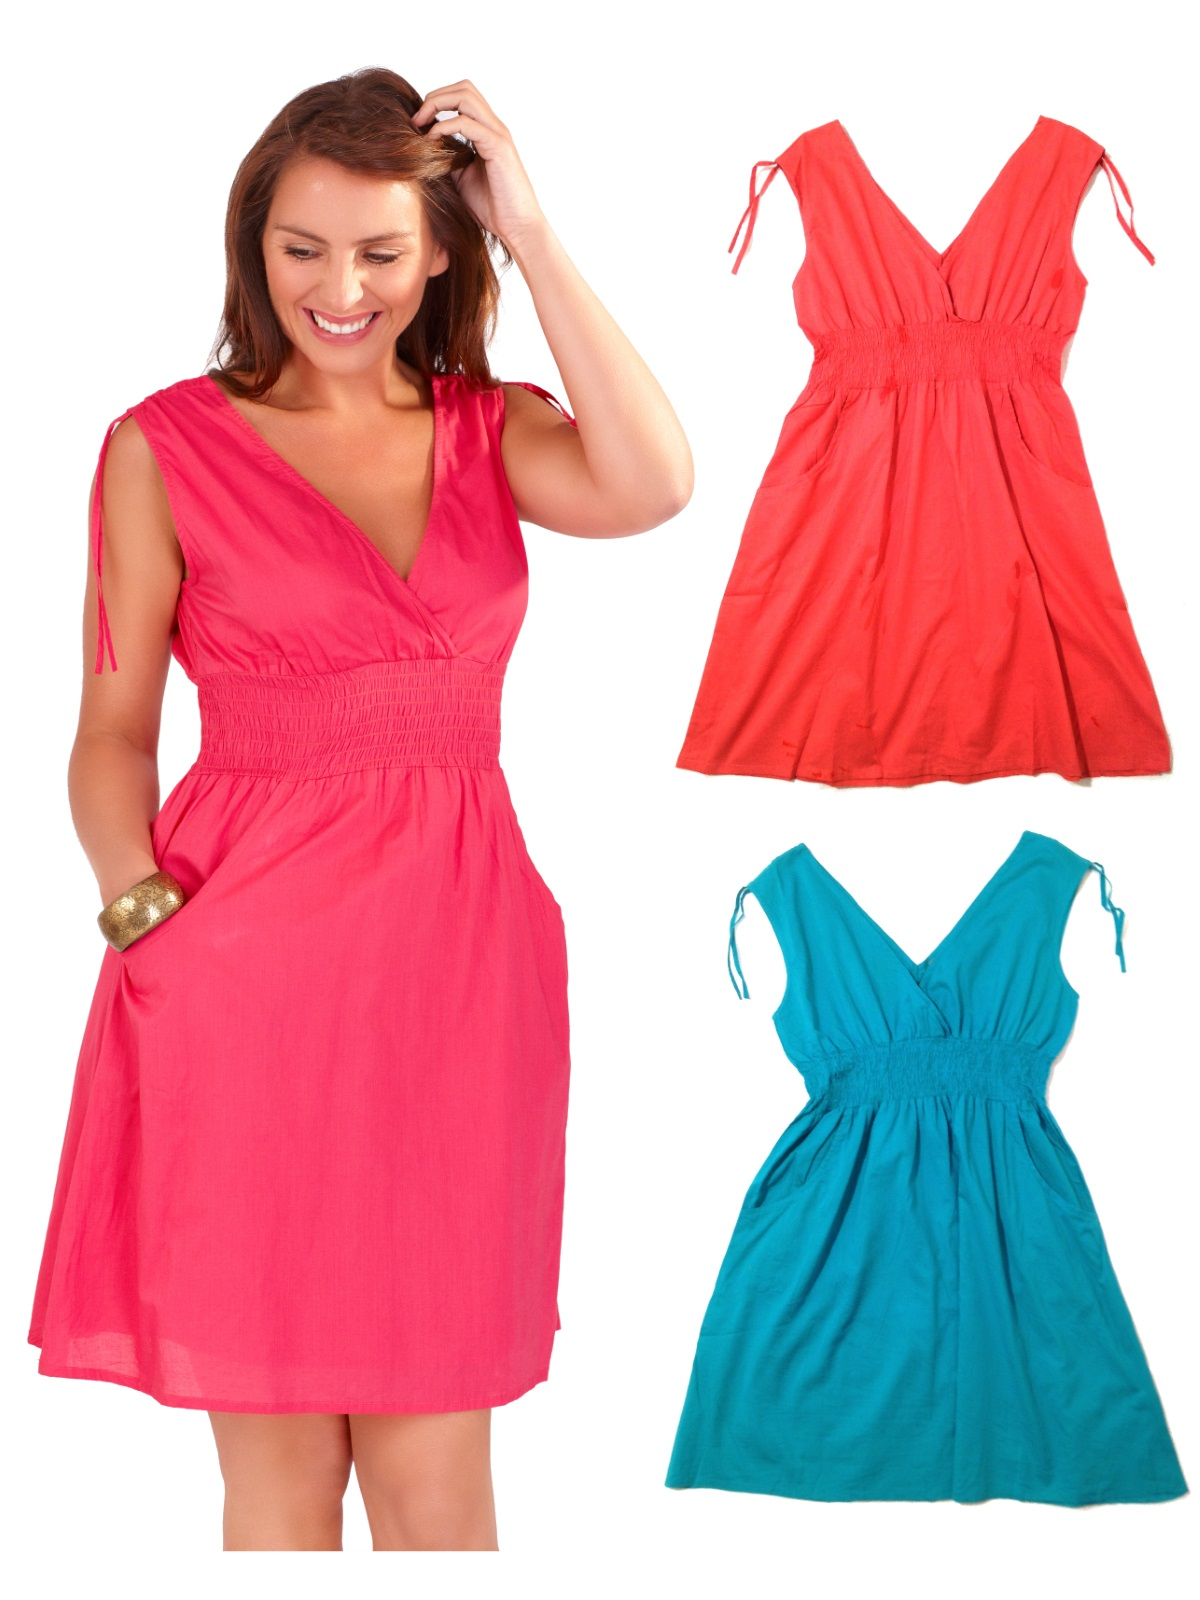 10702 Gallery womens summer dress 100% cotton v neck beach cover up ladies,Ebay Womens Clothing Size 8